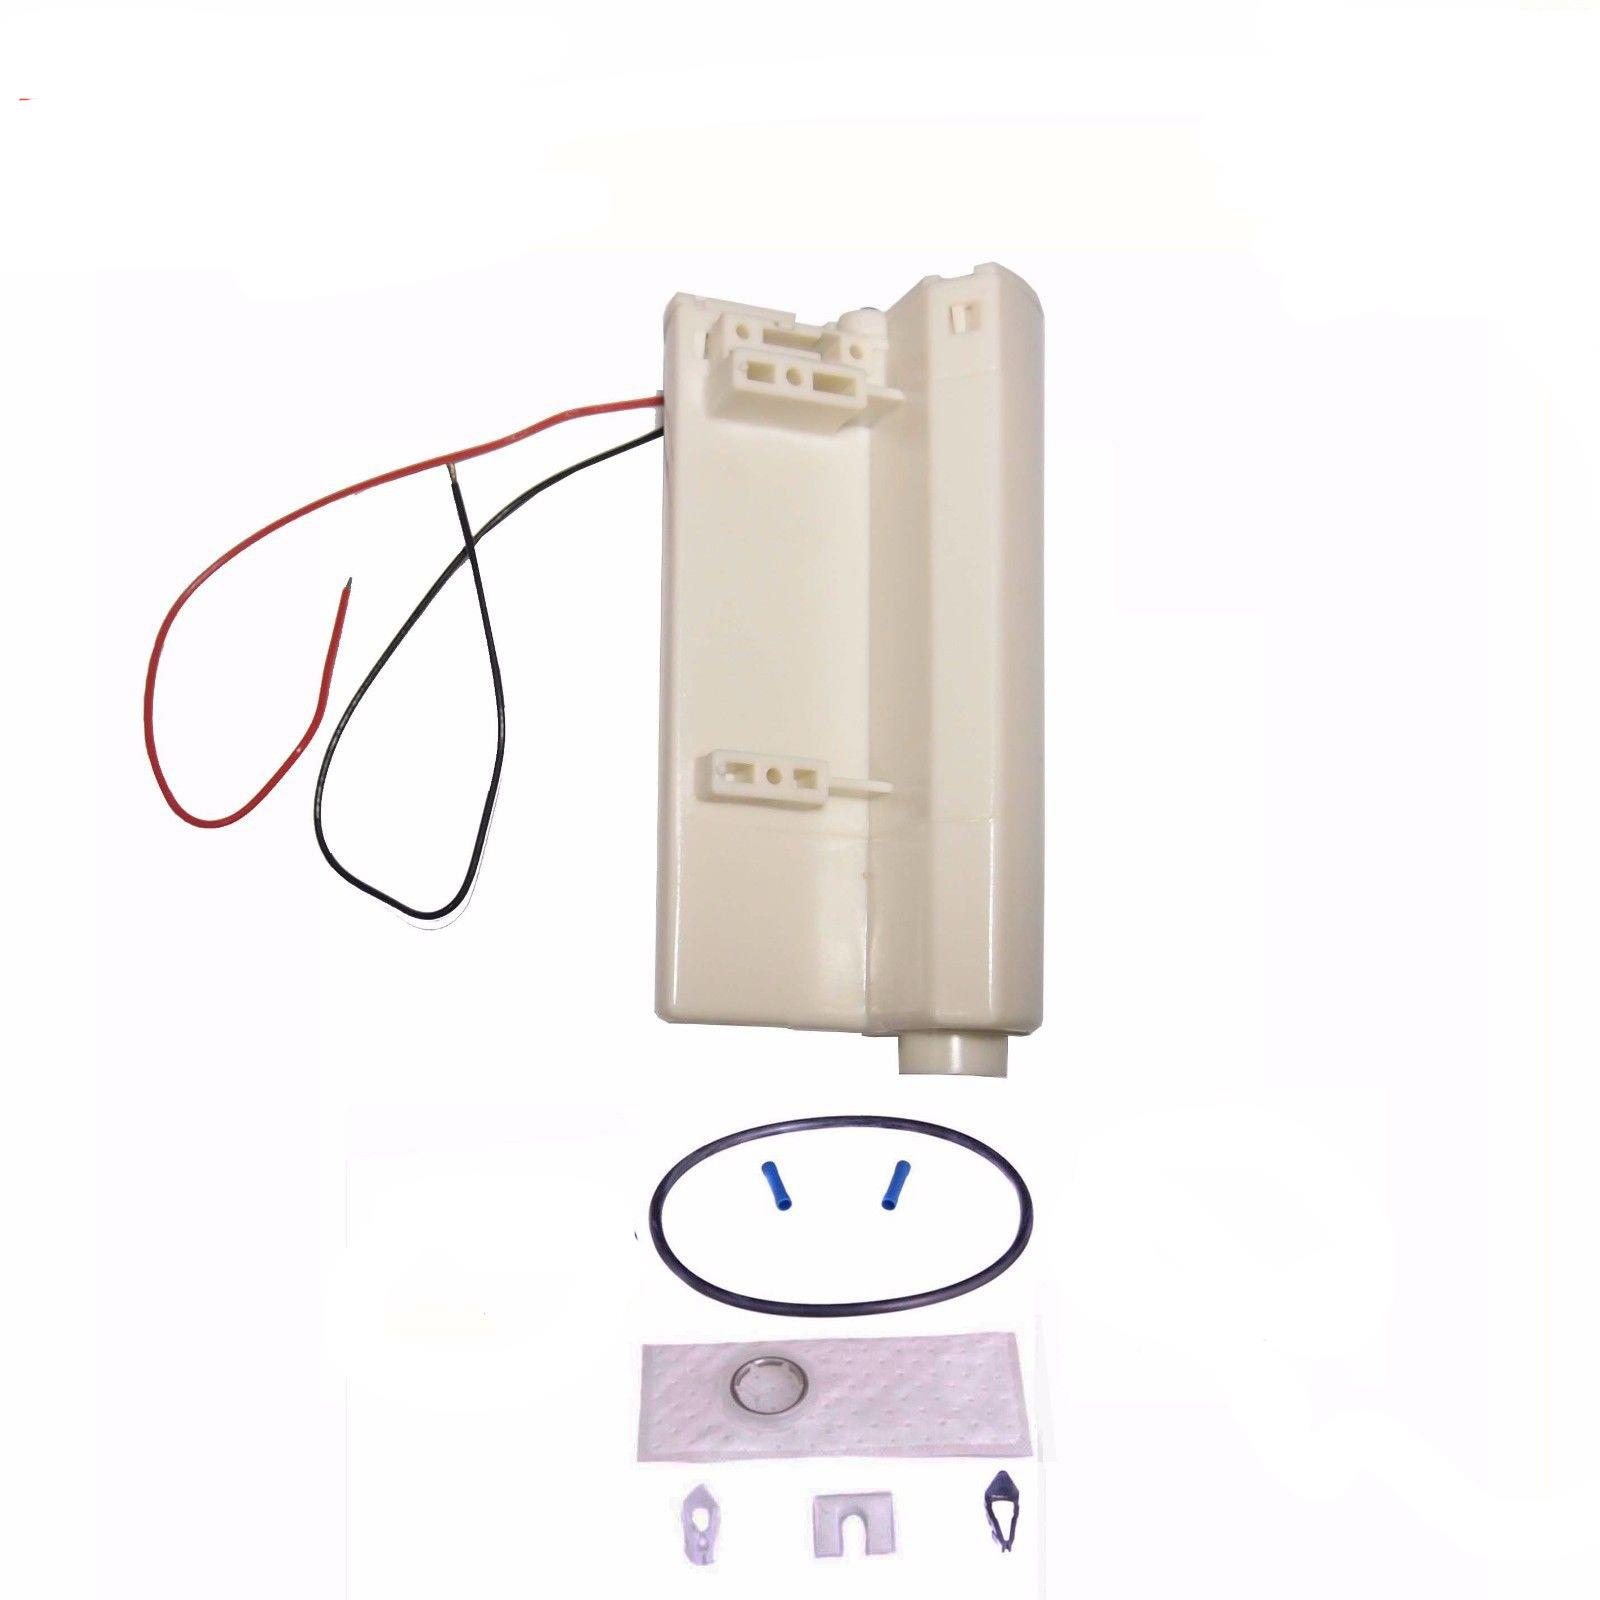 FOR 1990-1996 FORD F150 F250 F350 GAS LEVEL SENDING UNIT ELECTRIC FUEL PUMP KIT